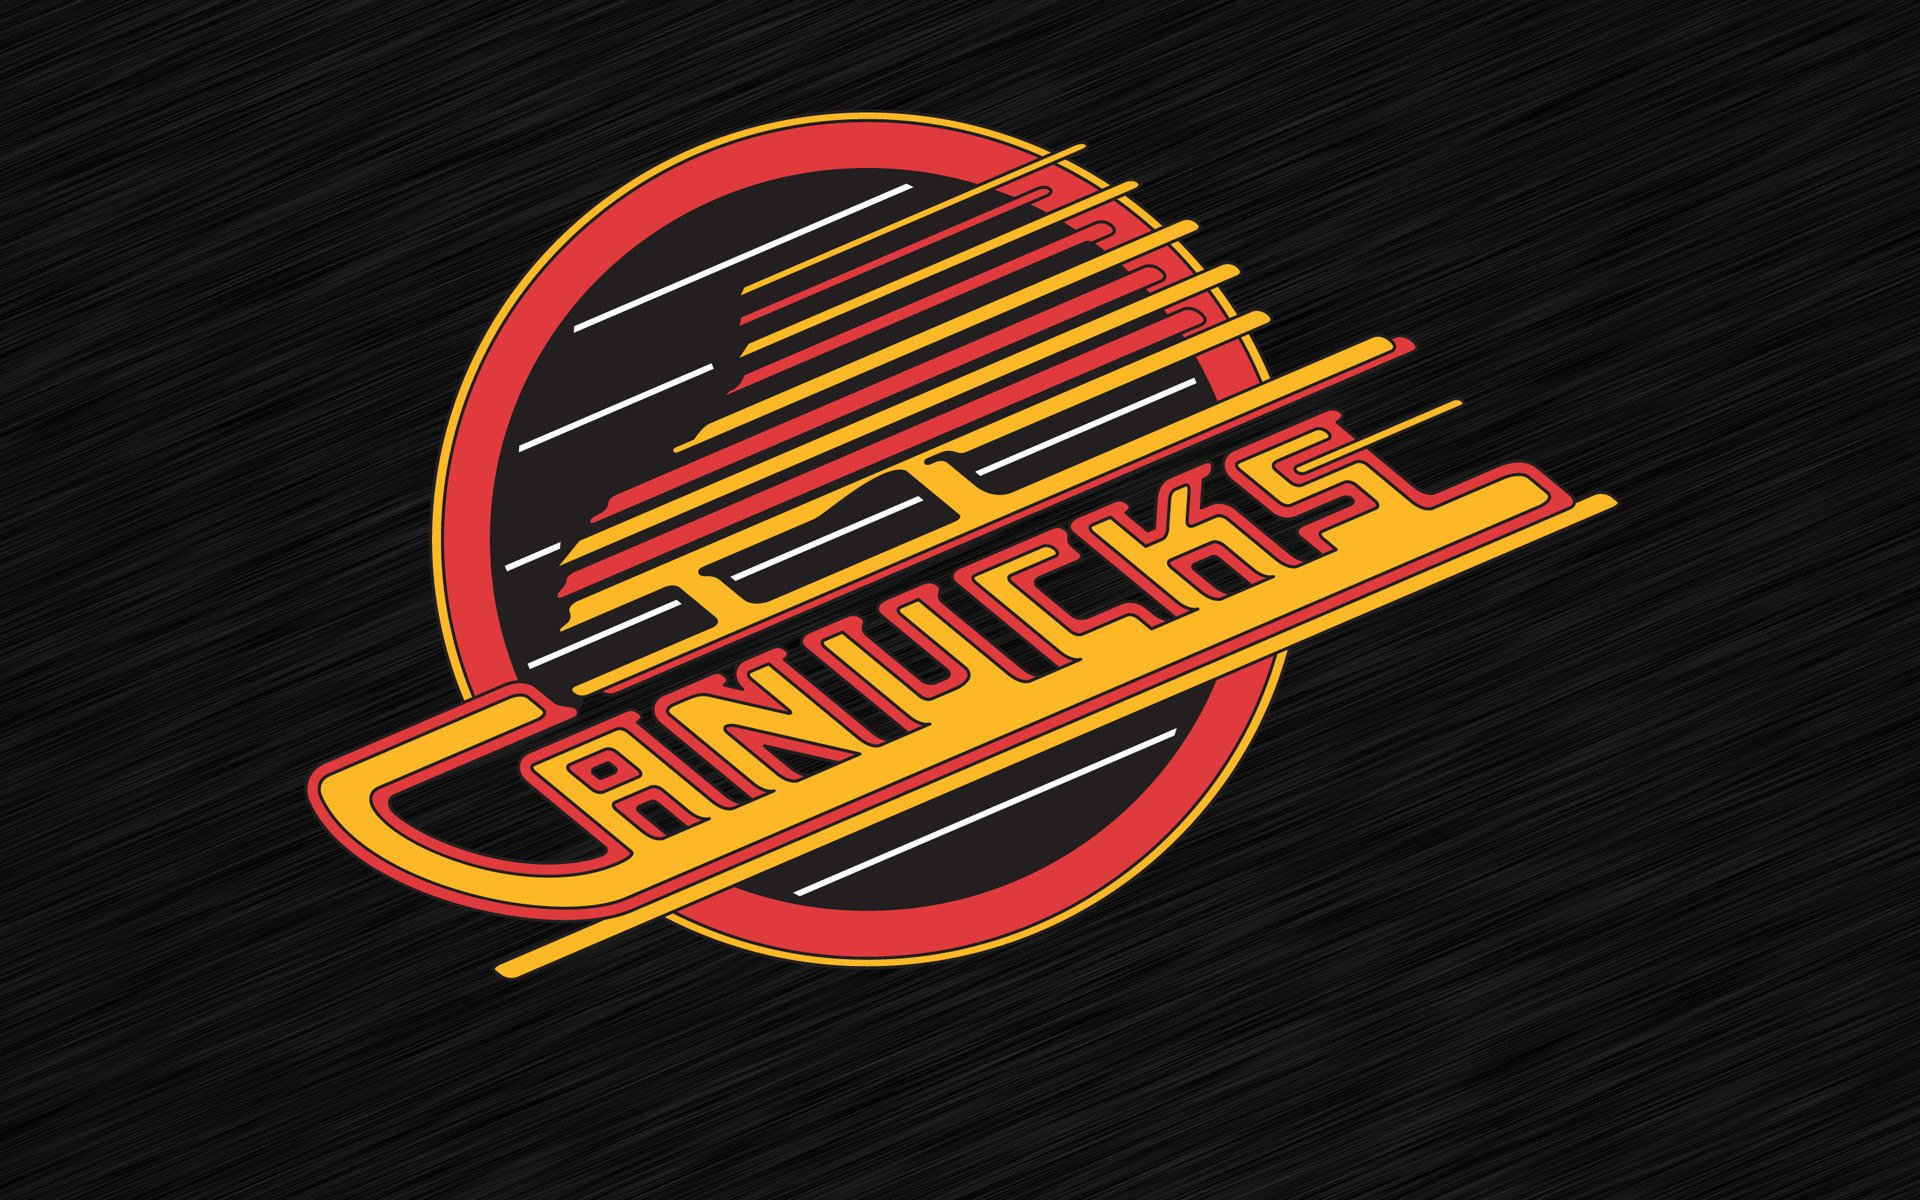 canucks black1 skate vancouver wallpaper   ForWallpapercom 1920x1200